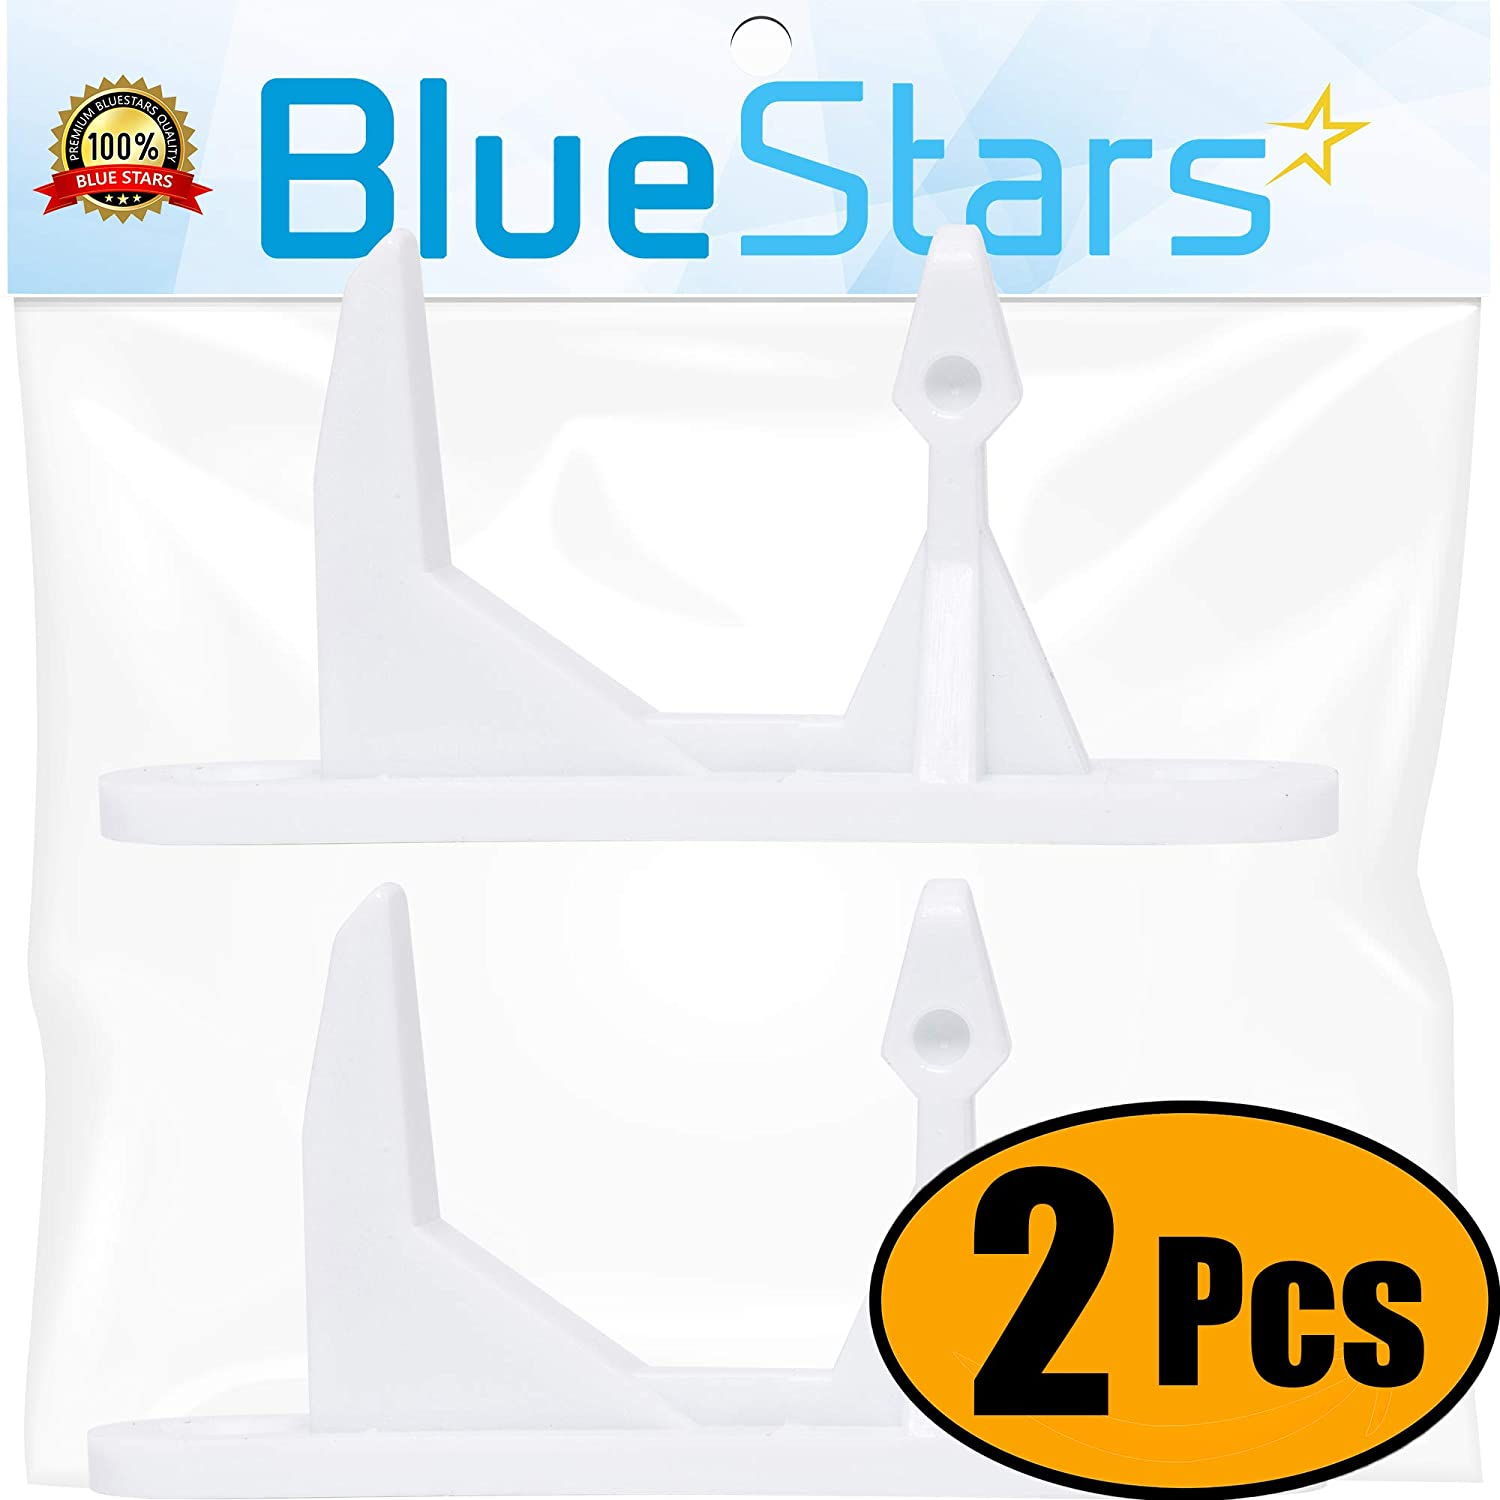 Ultra Durable 131763310 Washer Door Striker Replacement Part by Blue Stars - Exact Fit for Frigidaire & Kenmore Washer - Replaces 131763300 131763310 AP3580441 - PACK OF 2